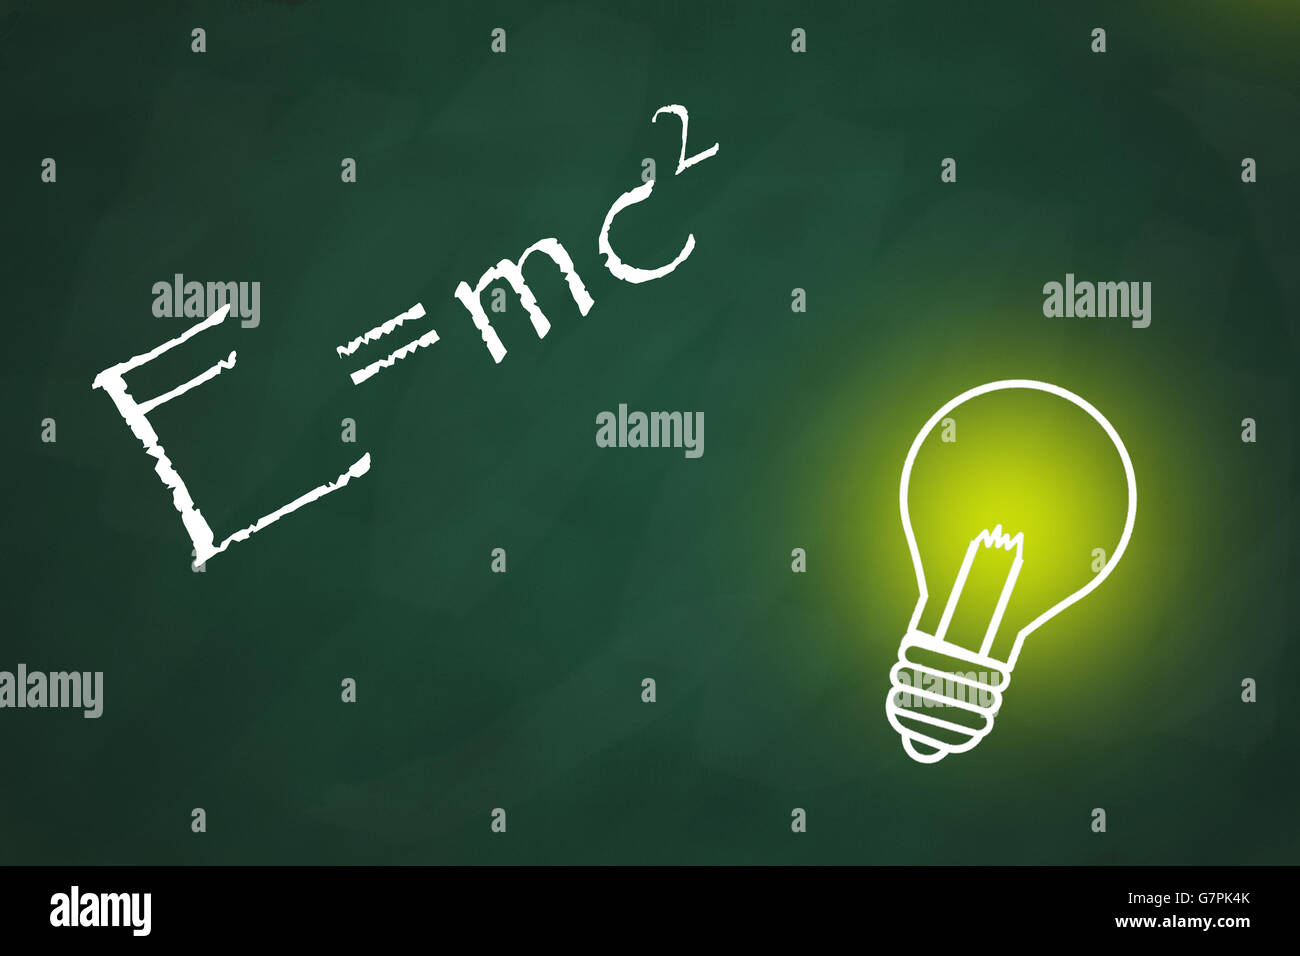 Chalkboard with a bright light bulb and theory of relativity - Stock Image